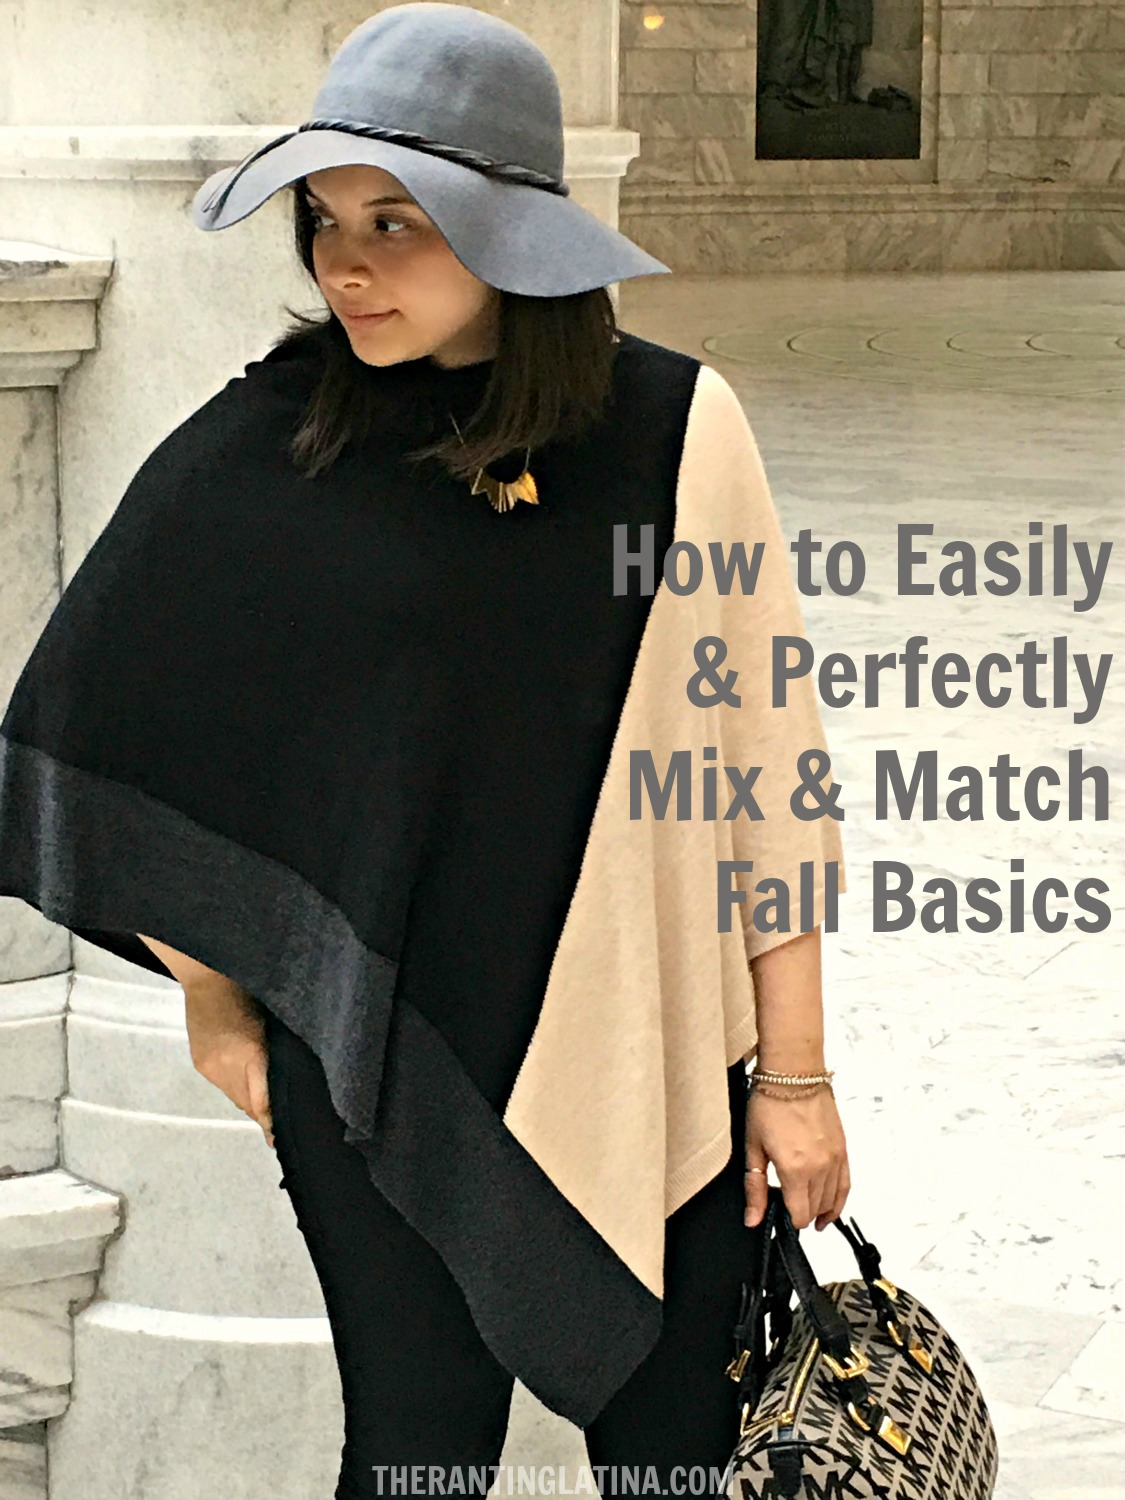 How to Mix & Match Fall Basics & Transition to A New Season